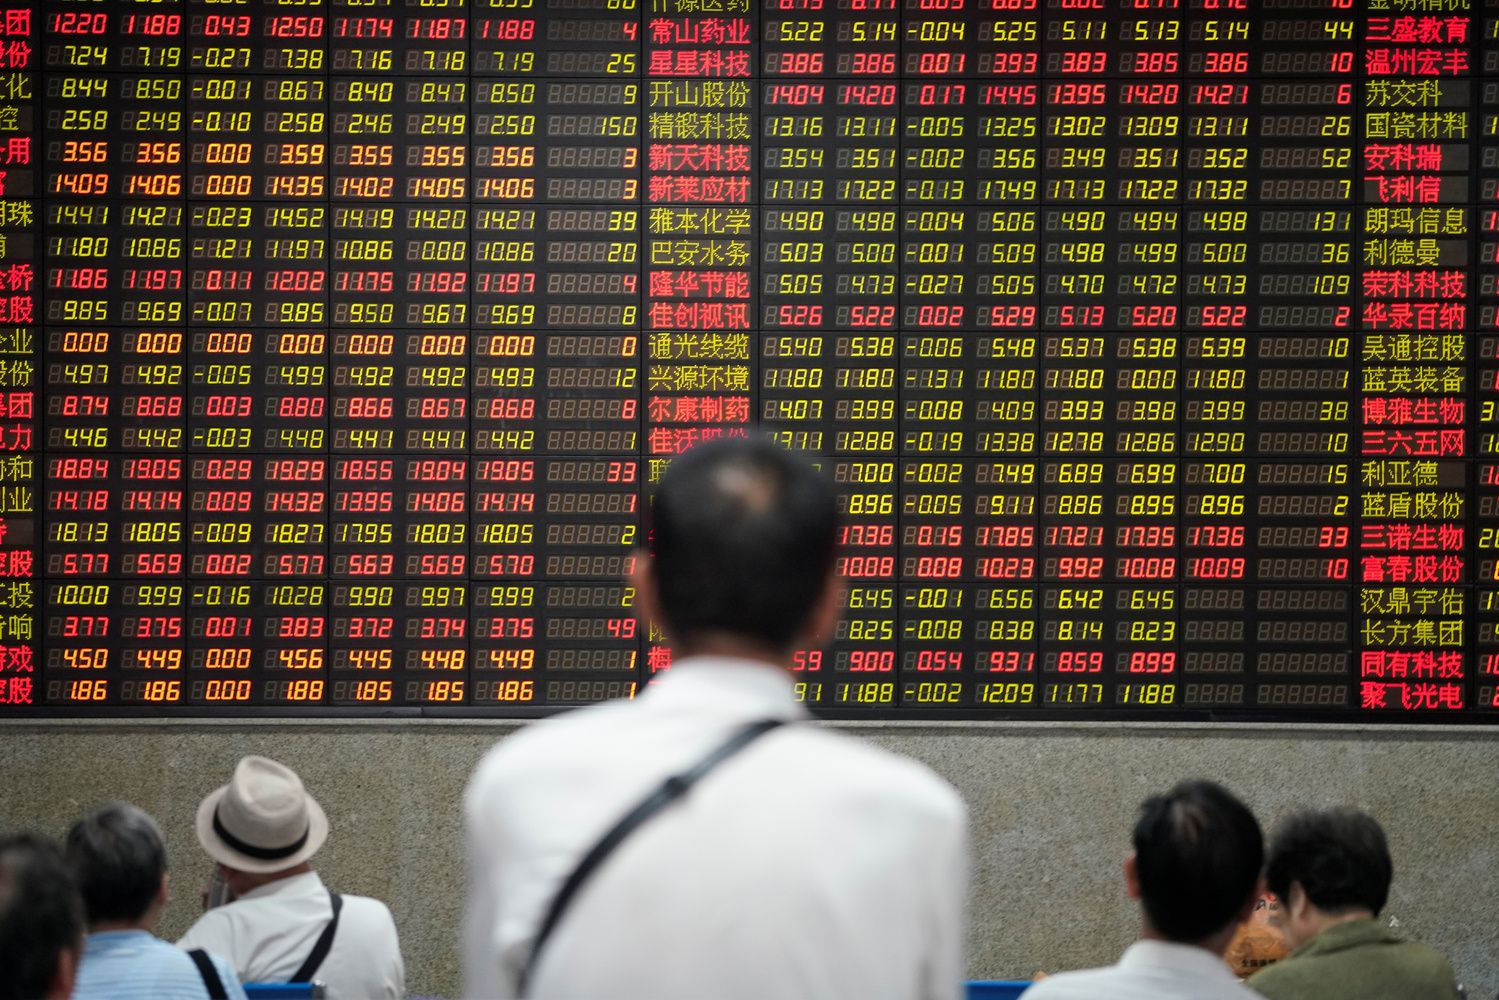 Stocks Stall After Trade Optimism; Dollar Steady: Markets Wrap